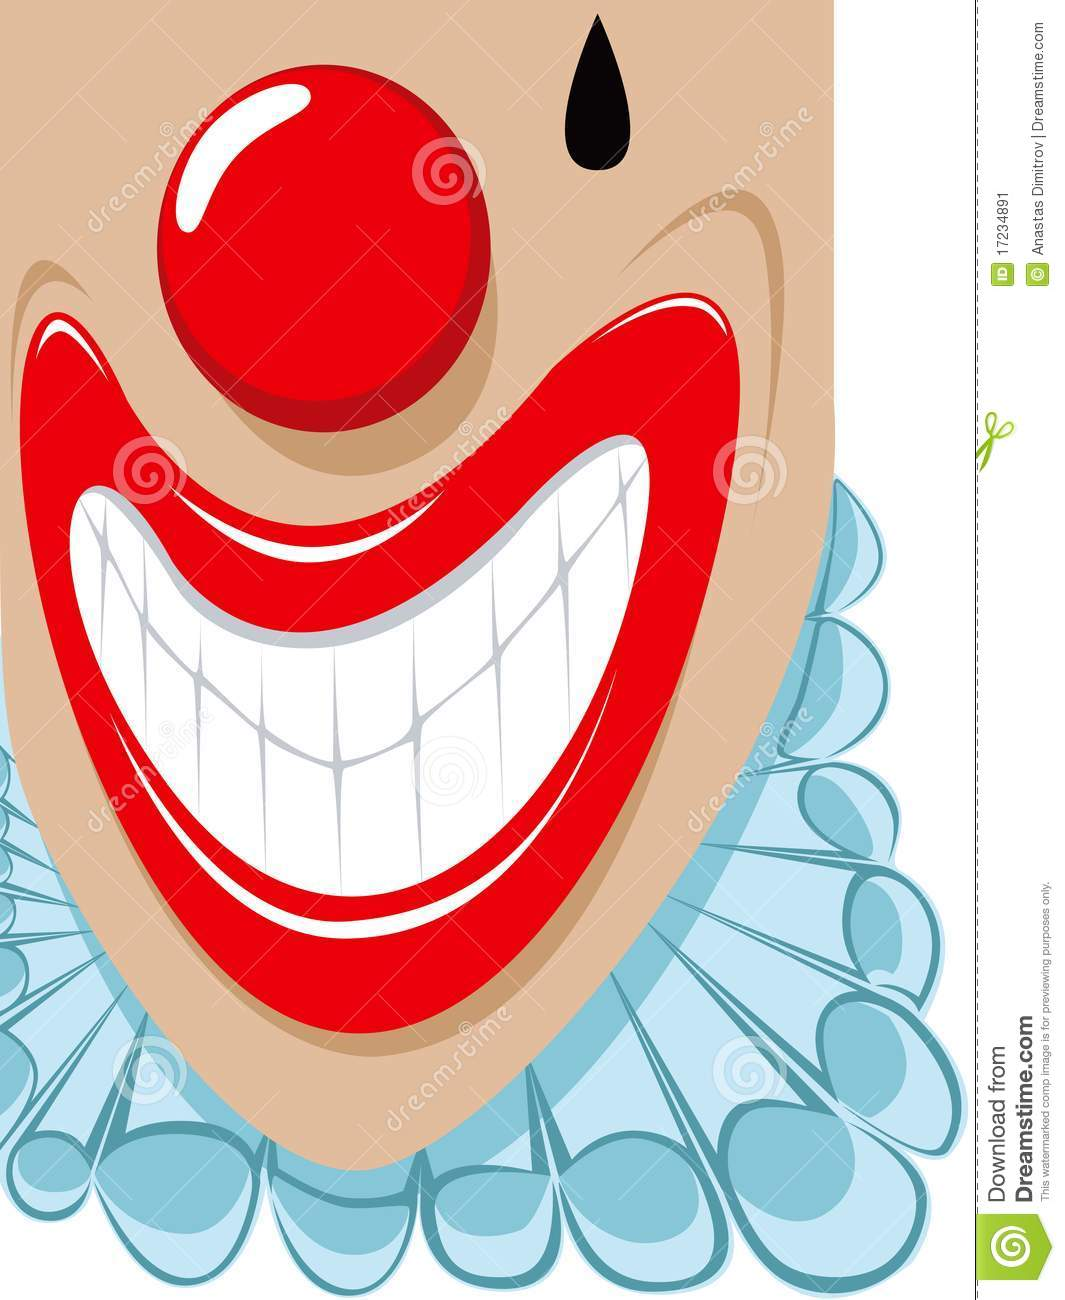 Smilling Clown With His Collar Poping Out Of The Picture Frame  Please